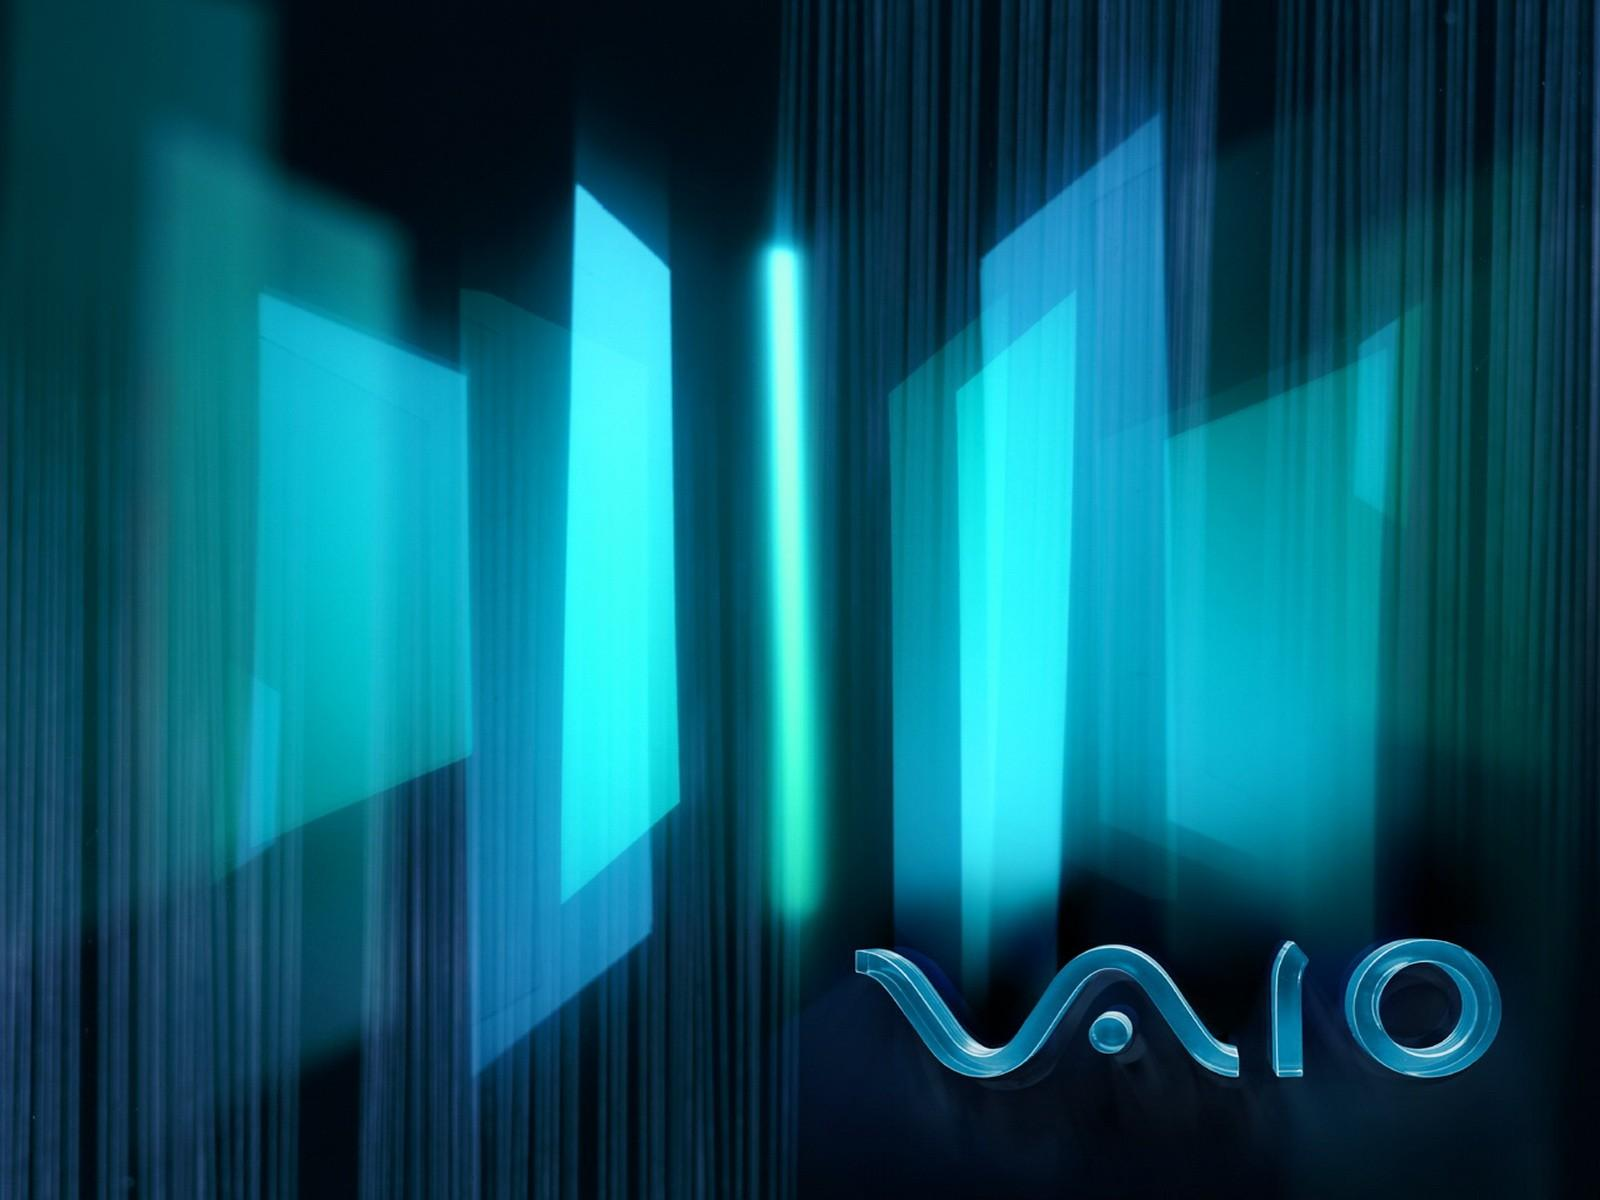 Обои Wallpapers brand VAIO 1600x1200